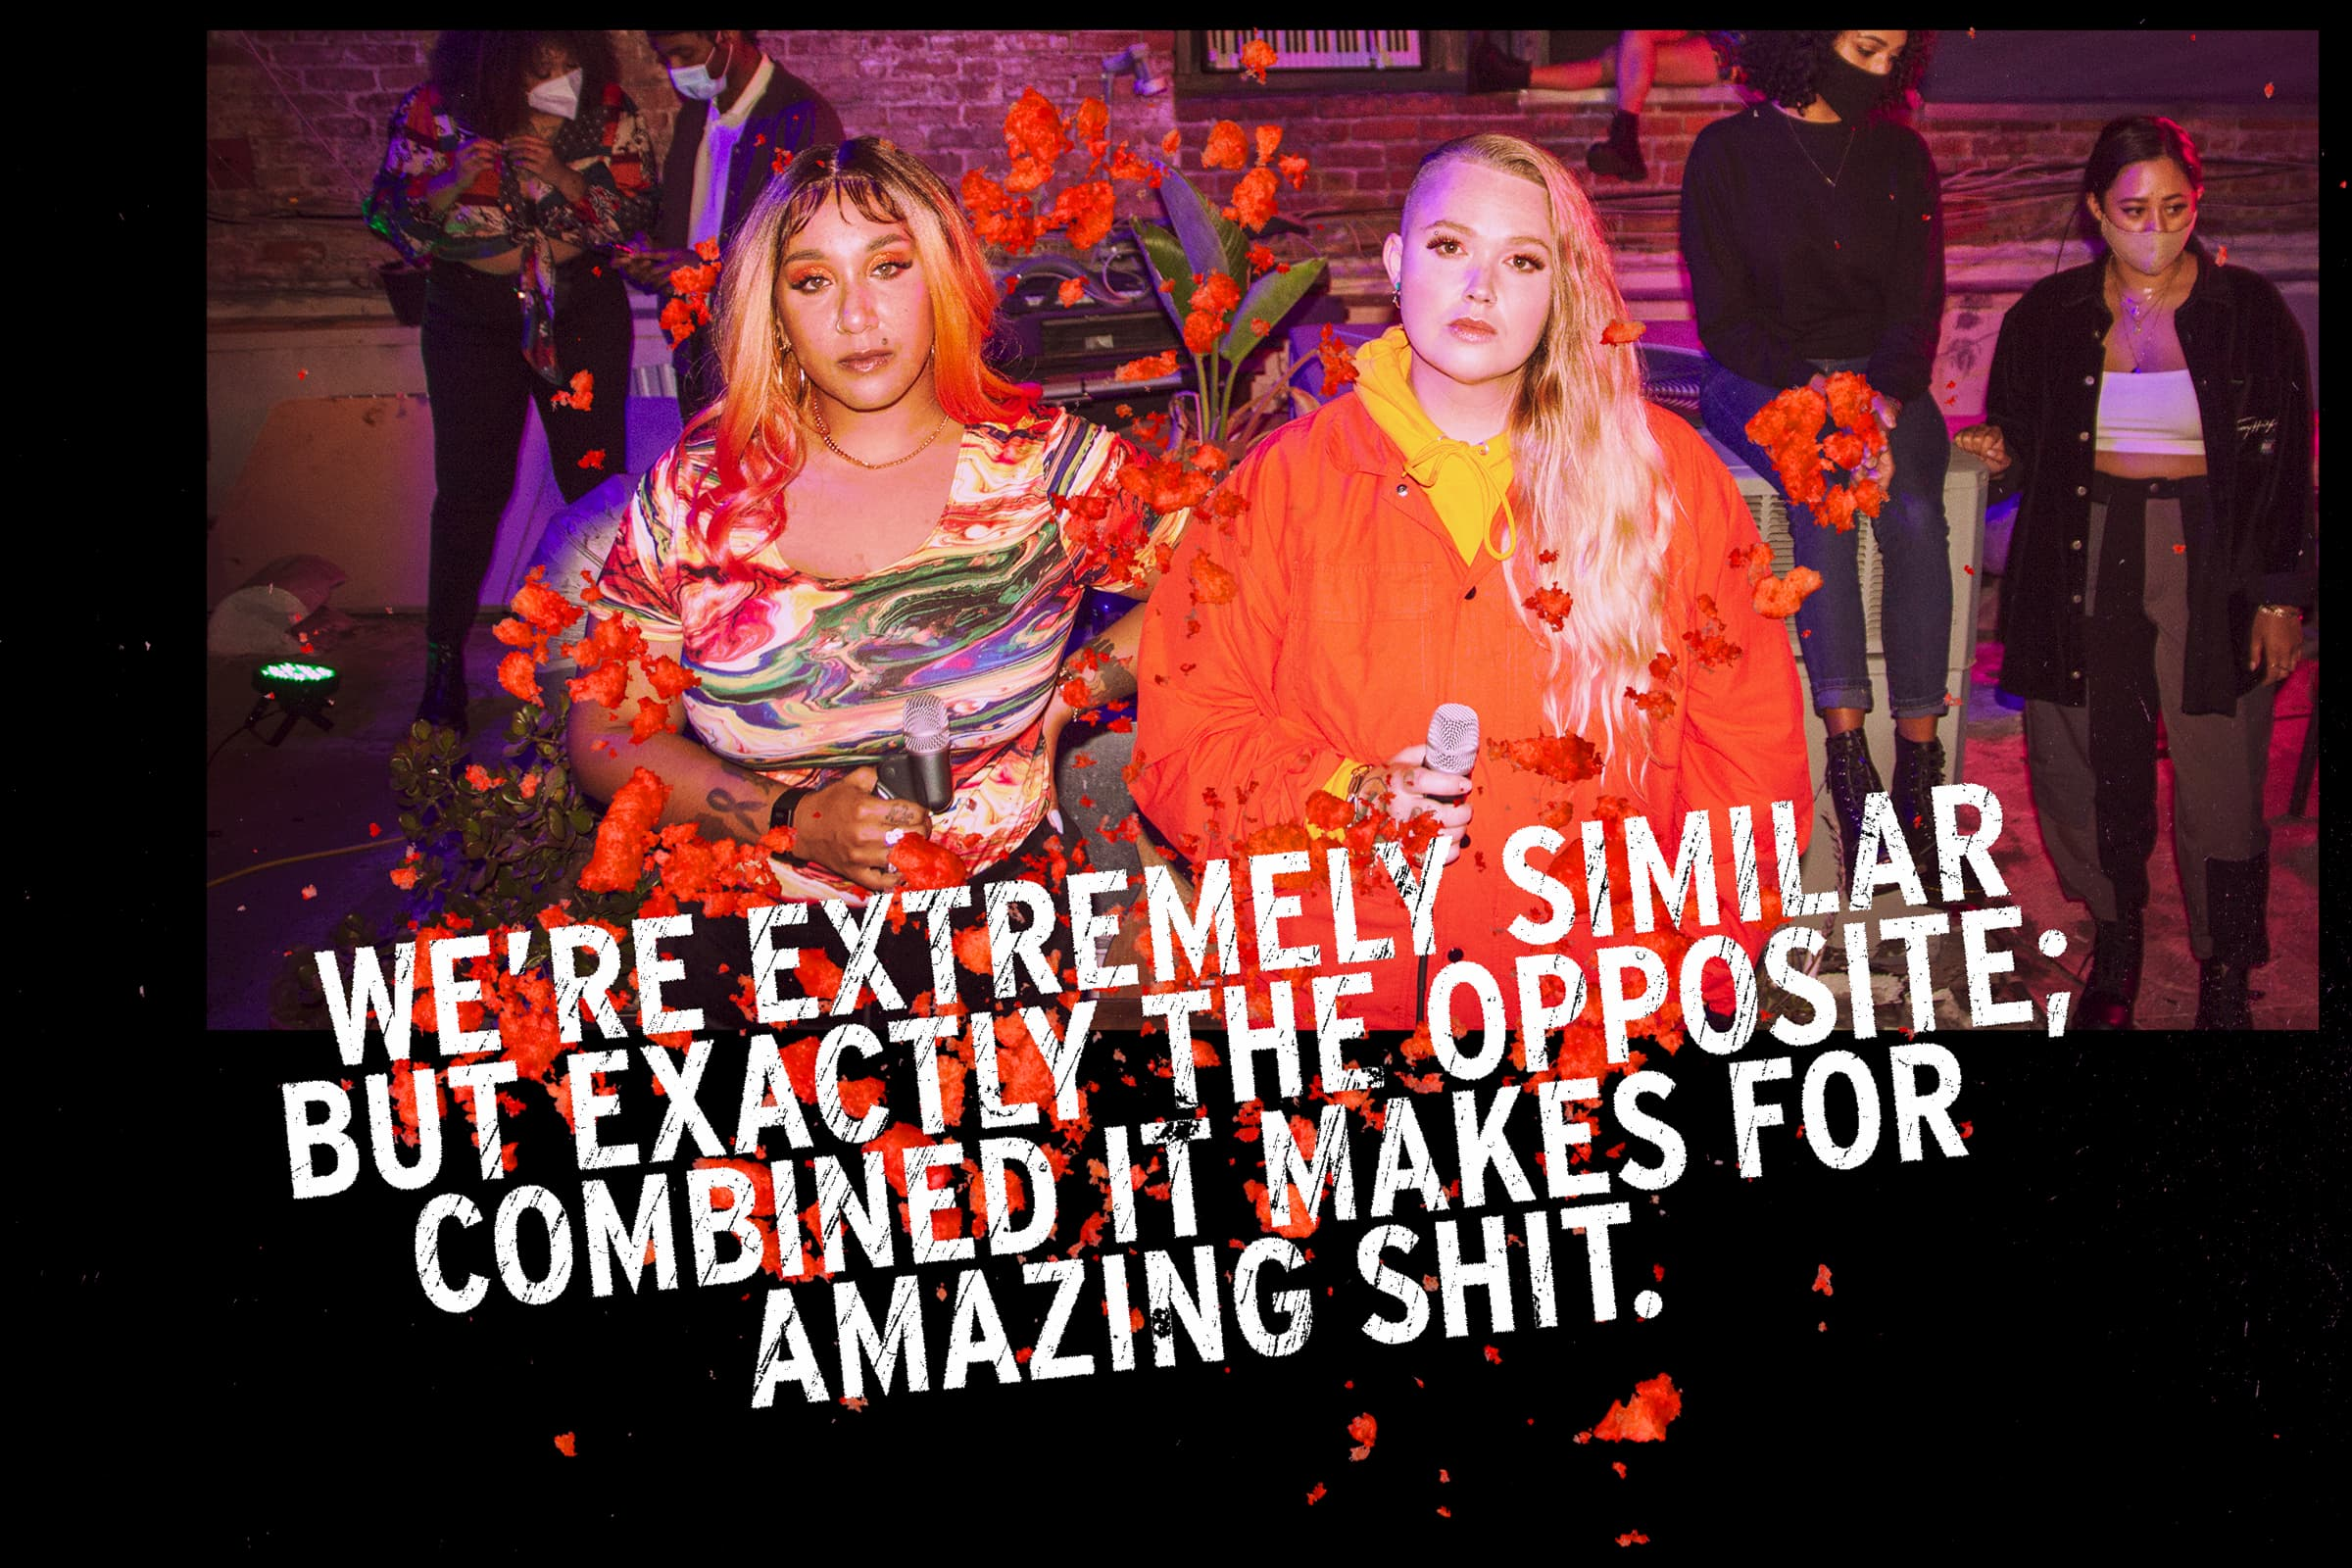 """A photo of Blimes & Gab looking directly into the camera with a confident look, they are holding microphones and are at an event. Overlaid are the words """"We're extremely similar but exactly the opposite; combined it makes for amazing shit."""""""